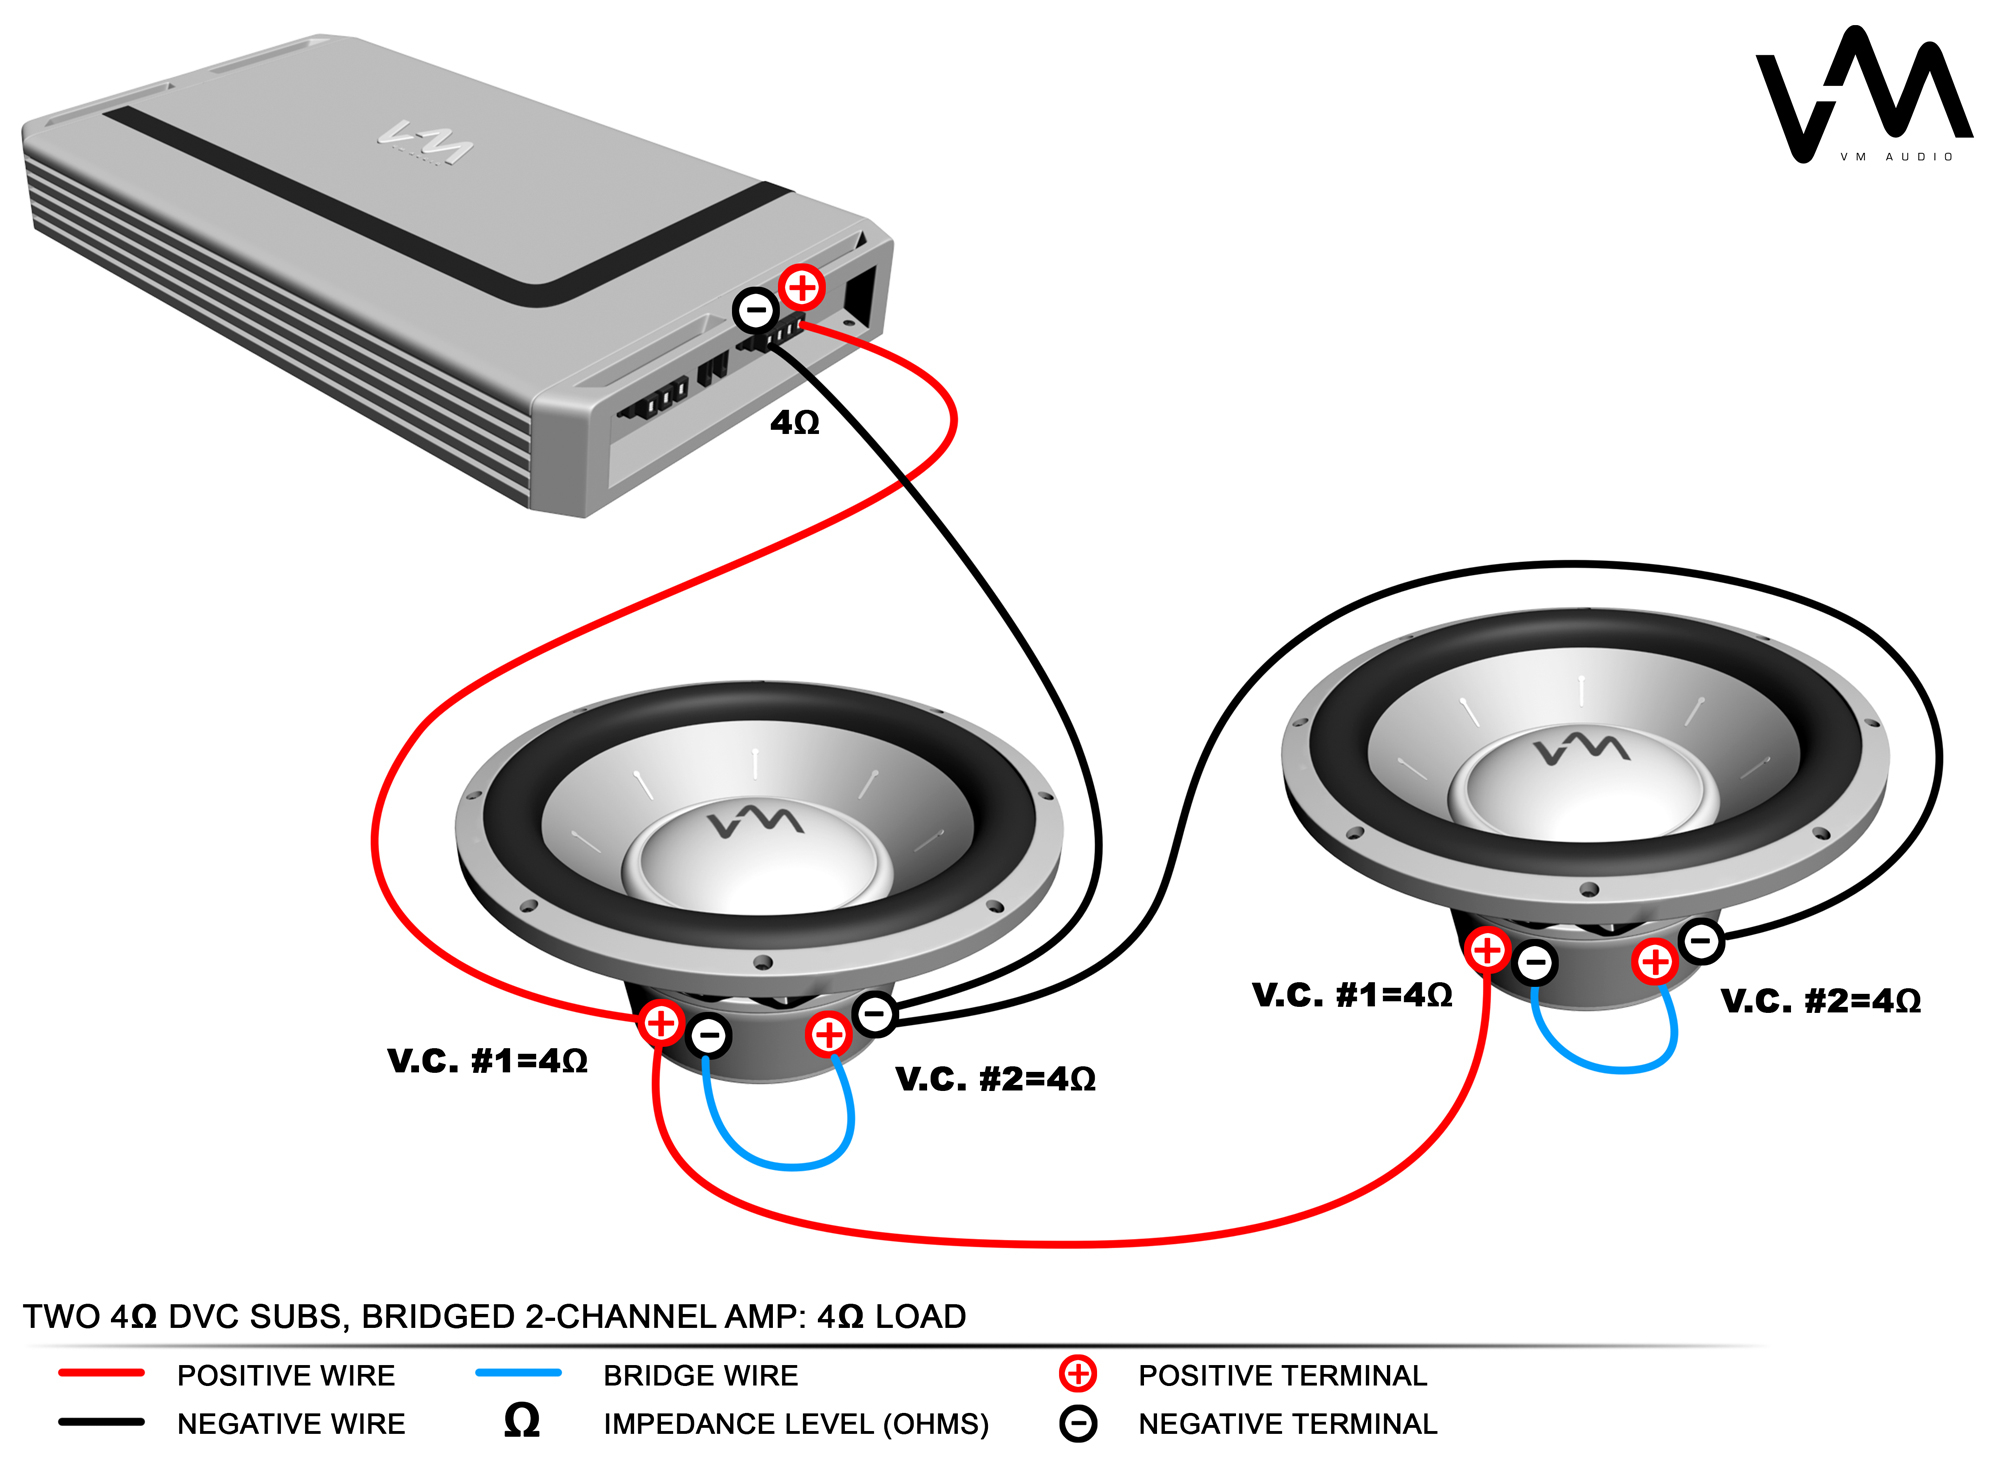 polk audio subwoofer wiring diagram Collection-Best way to hook up two subs to one amp 10-m